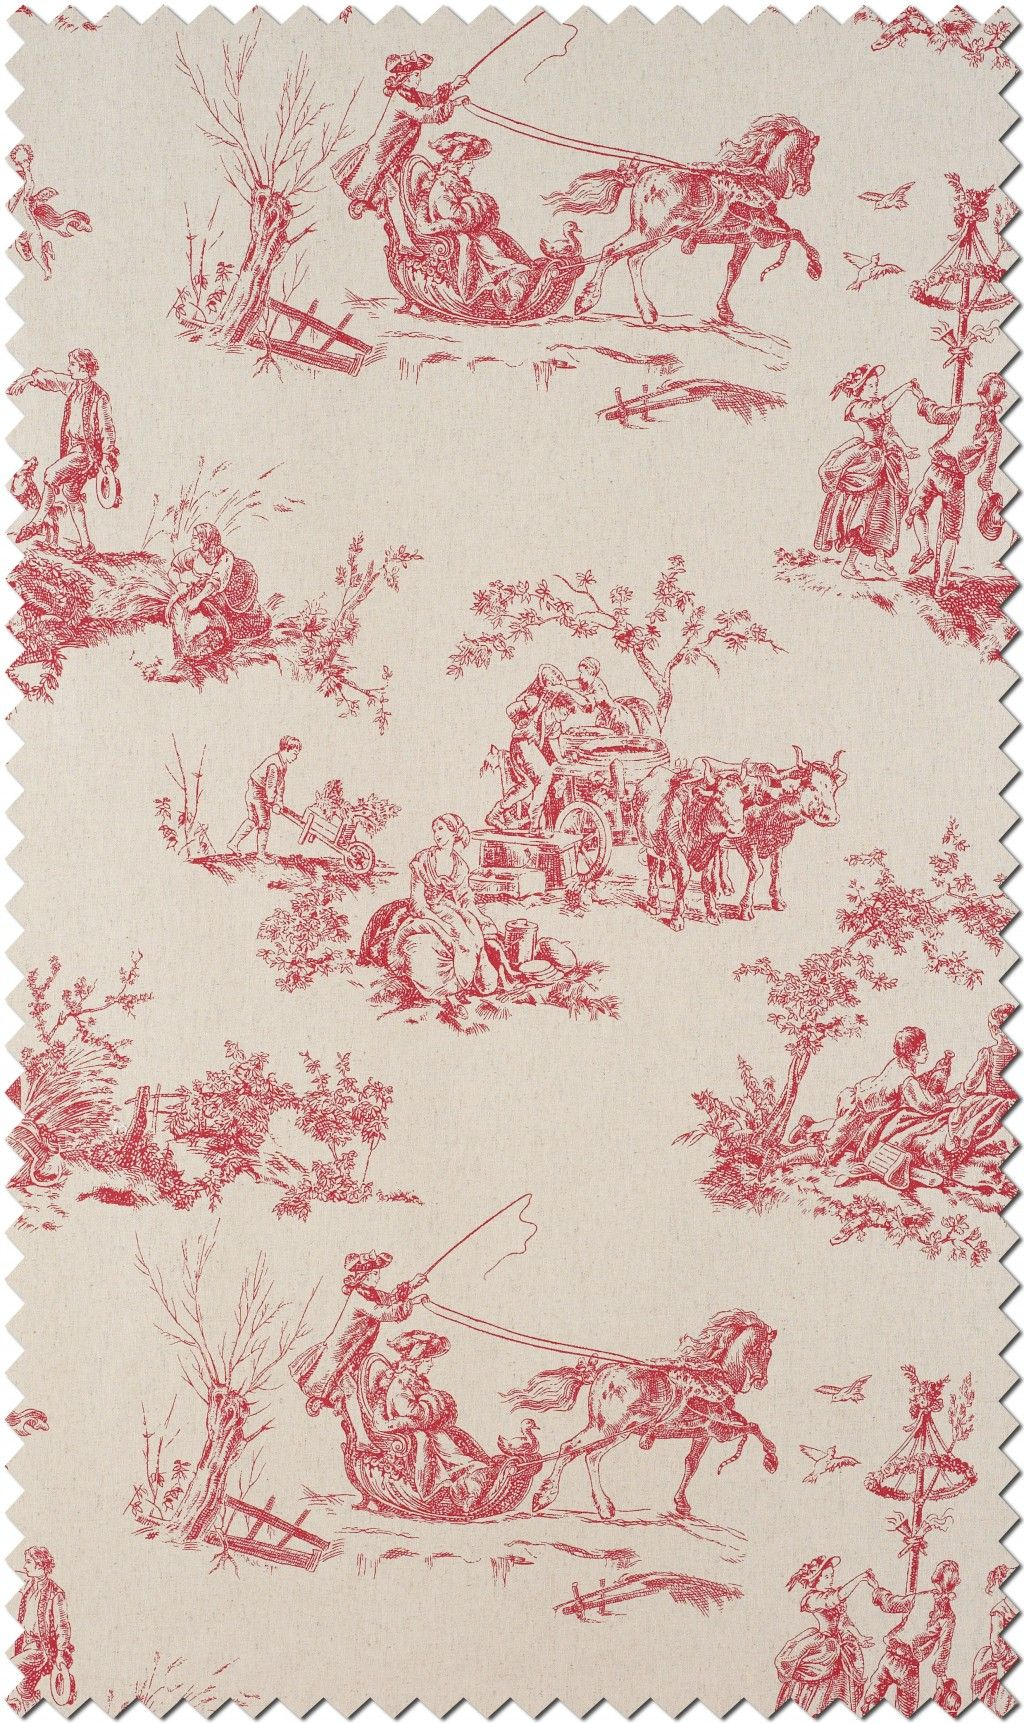 toile de jouy fabric collection of casadeco amboise telas pinterest toile de jouy toiles. Black Bedroom Furniture Sets. Home Design Ideas